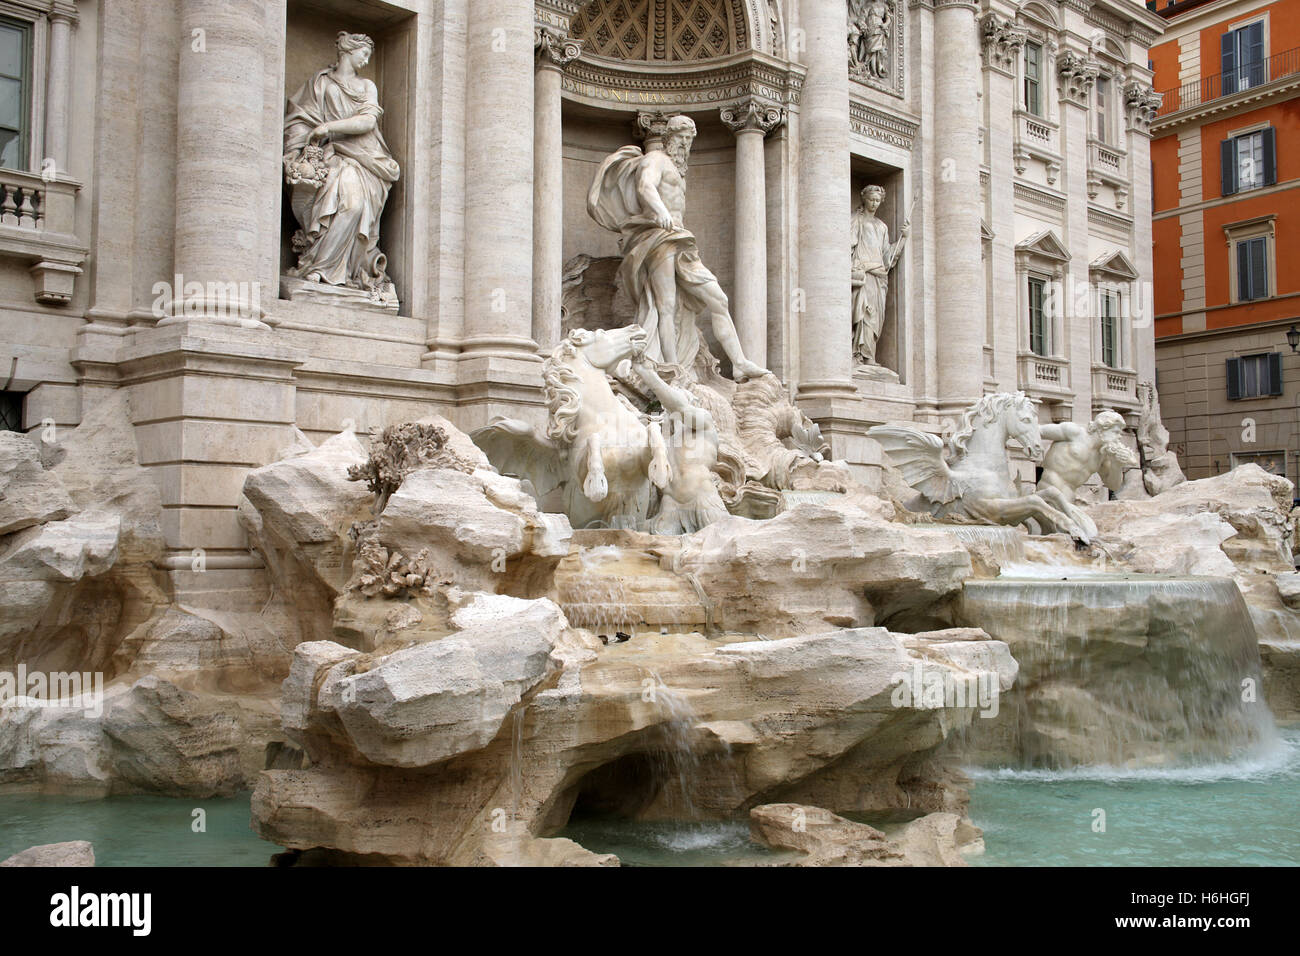 The most famous fountain in the world - the Trevi Fountain in Rome Italy - Stock Image